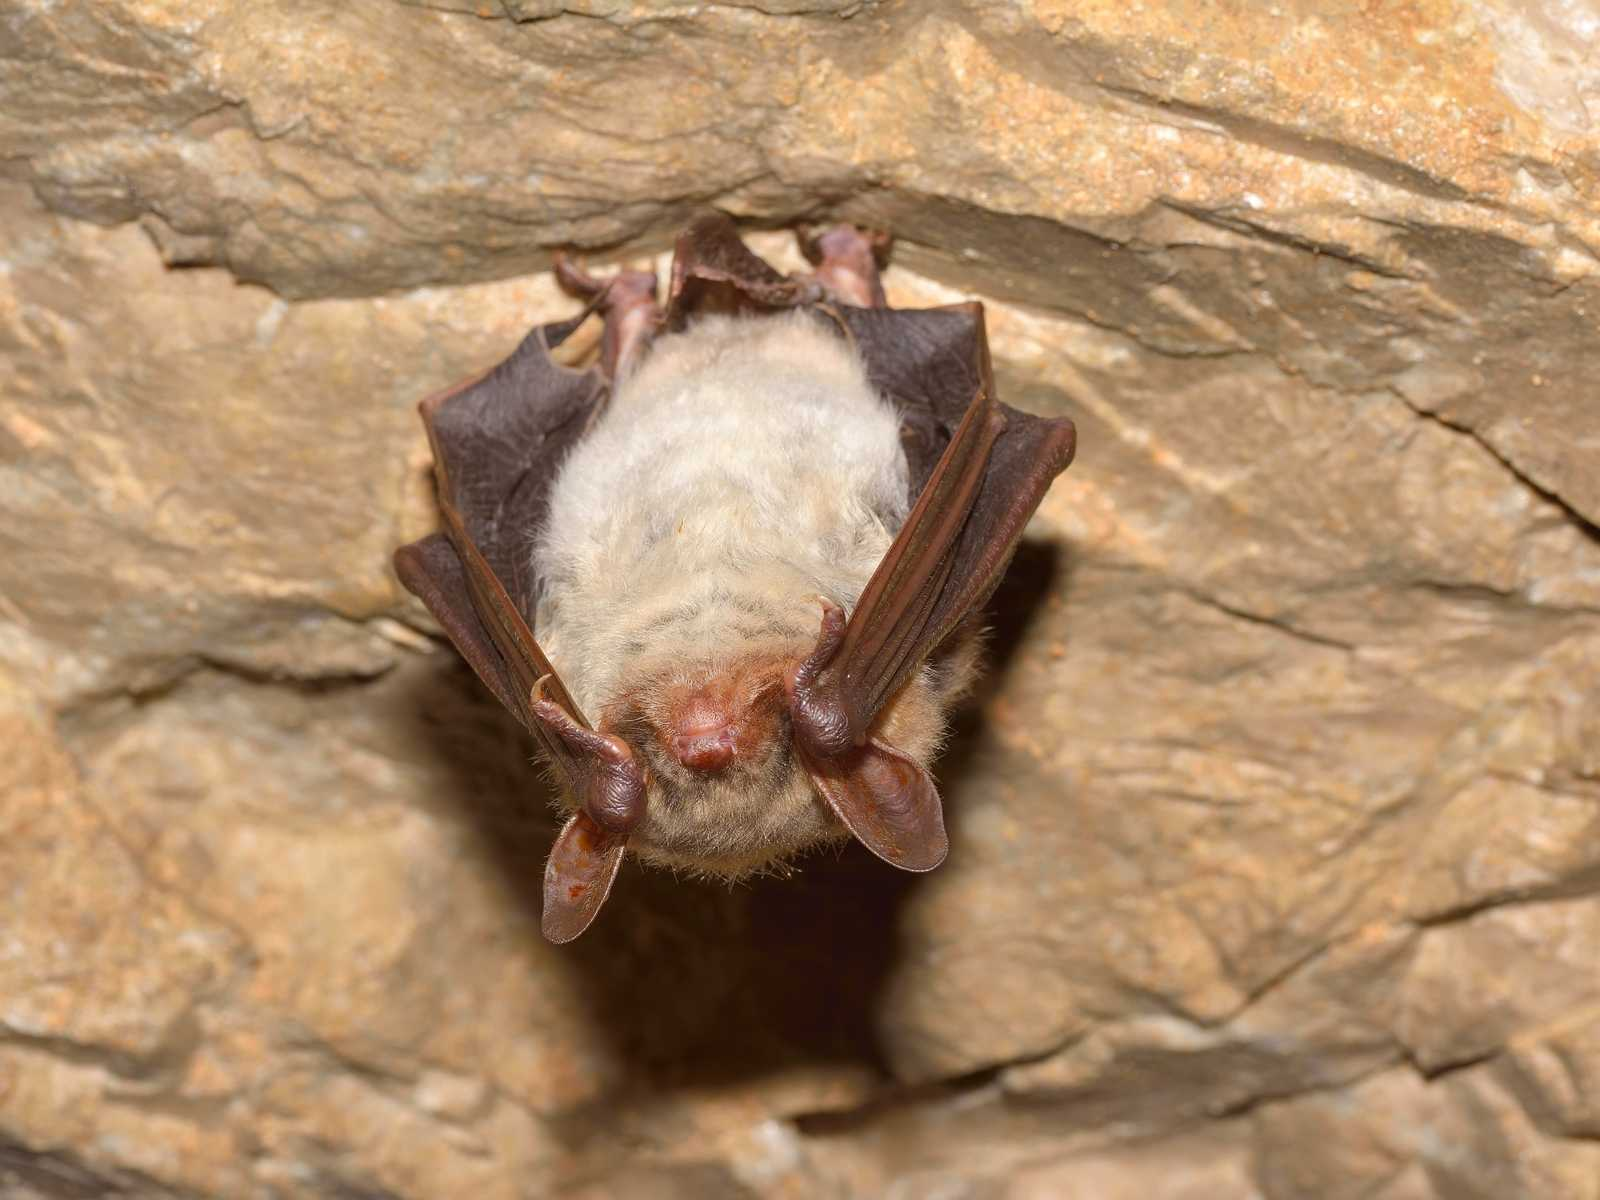 how well can bats see?